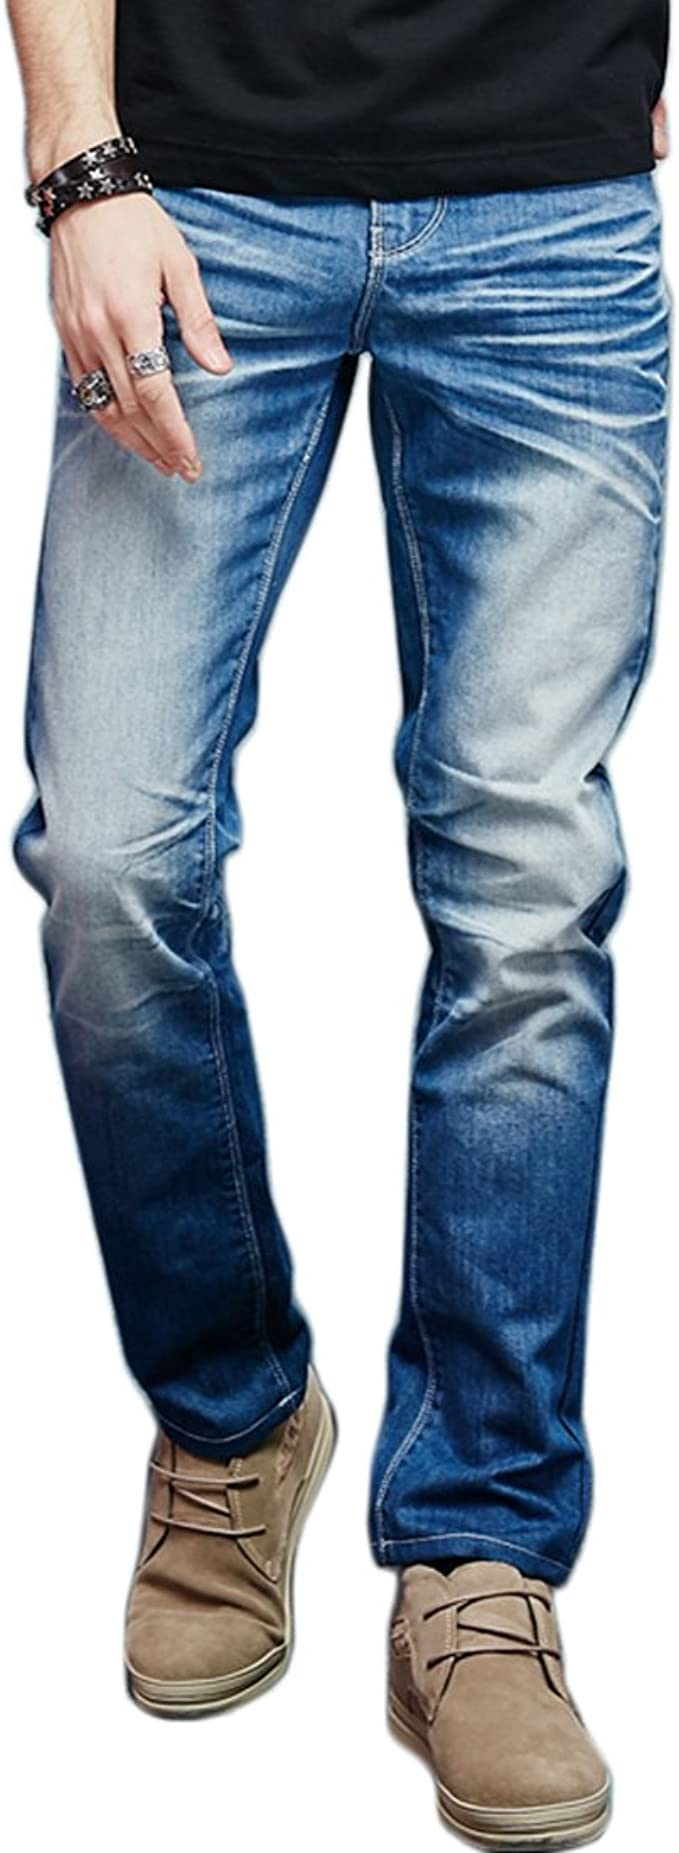 Liveinu Mens Jeans Straight Leg Stretch Denim Jean Blue